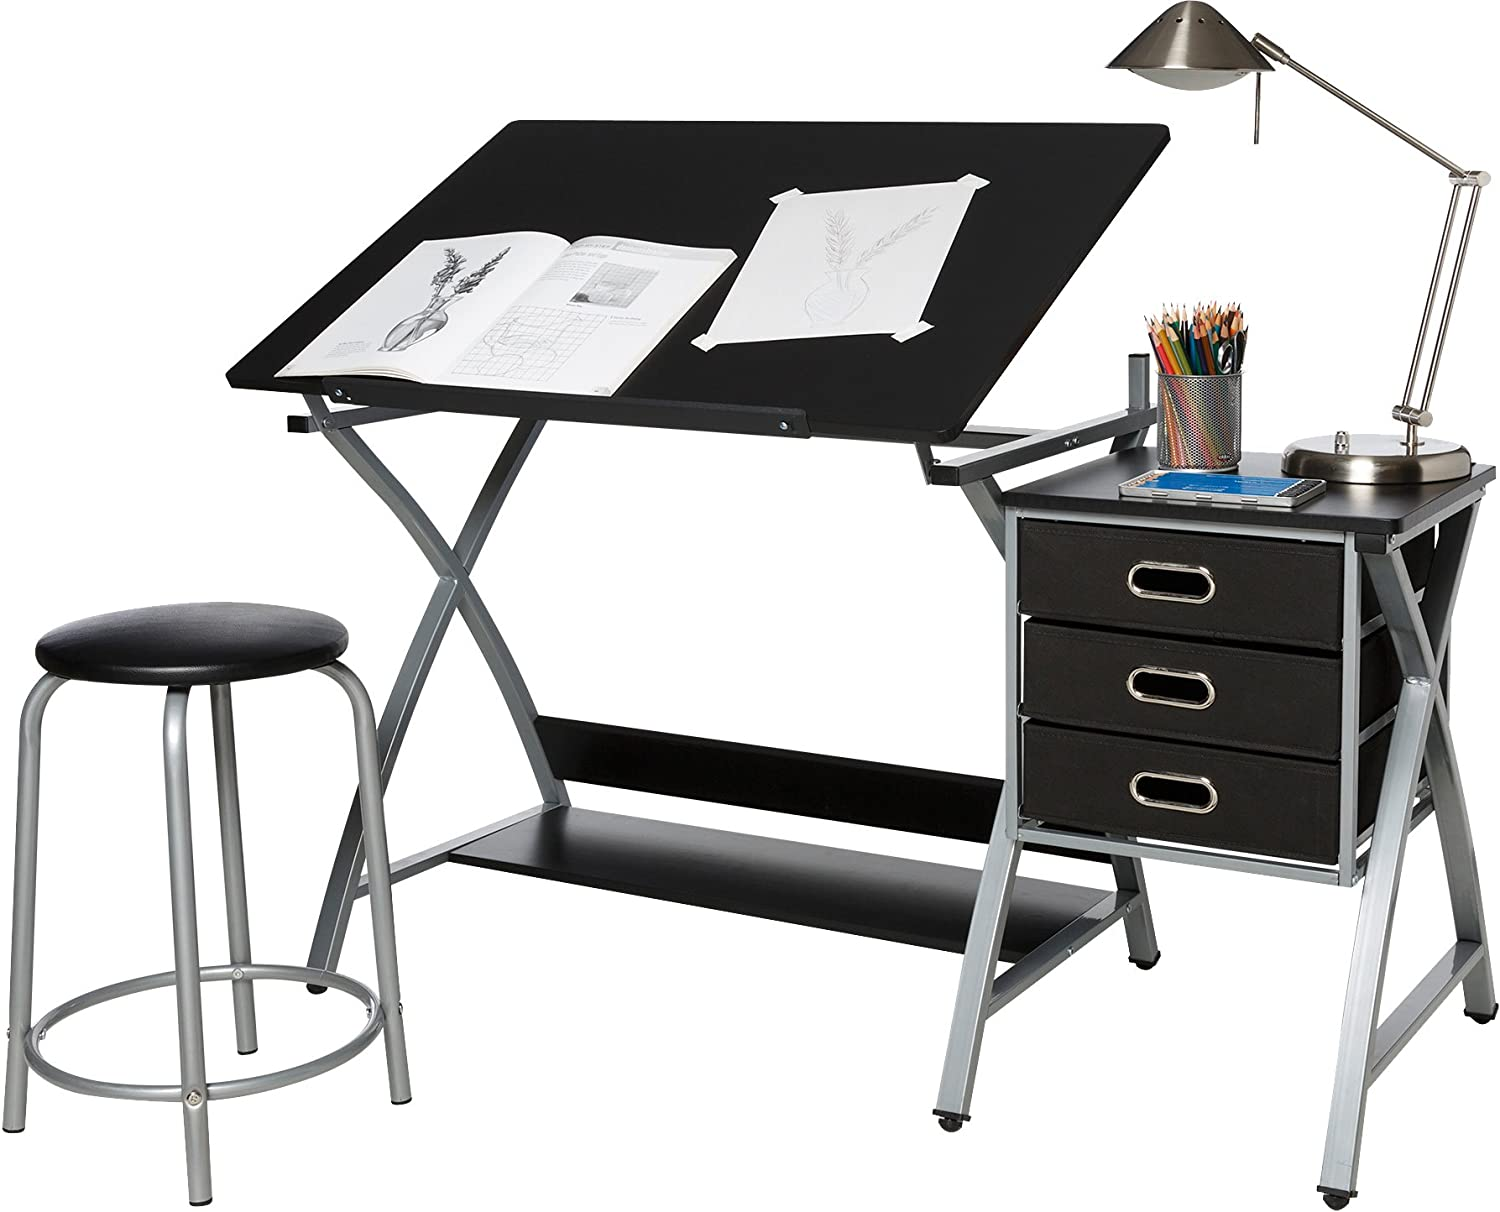 Limited Special Price OneSpace Craft Station Black and Silver lowest price